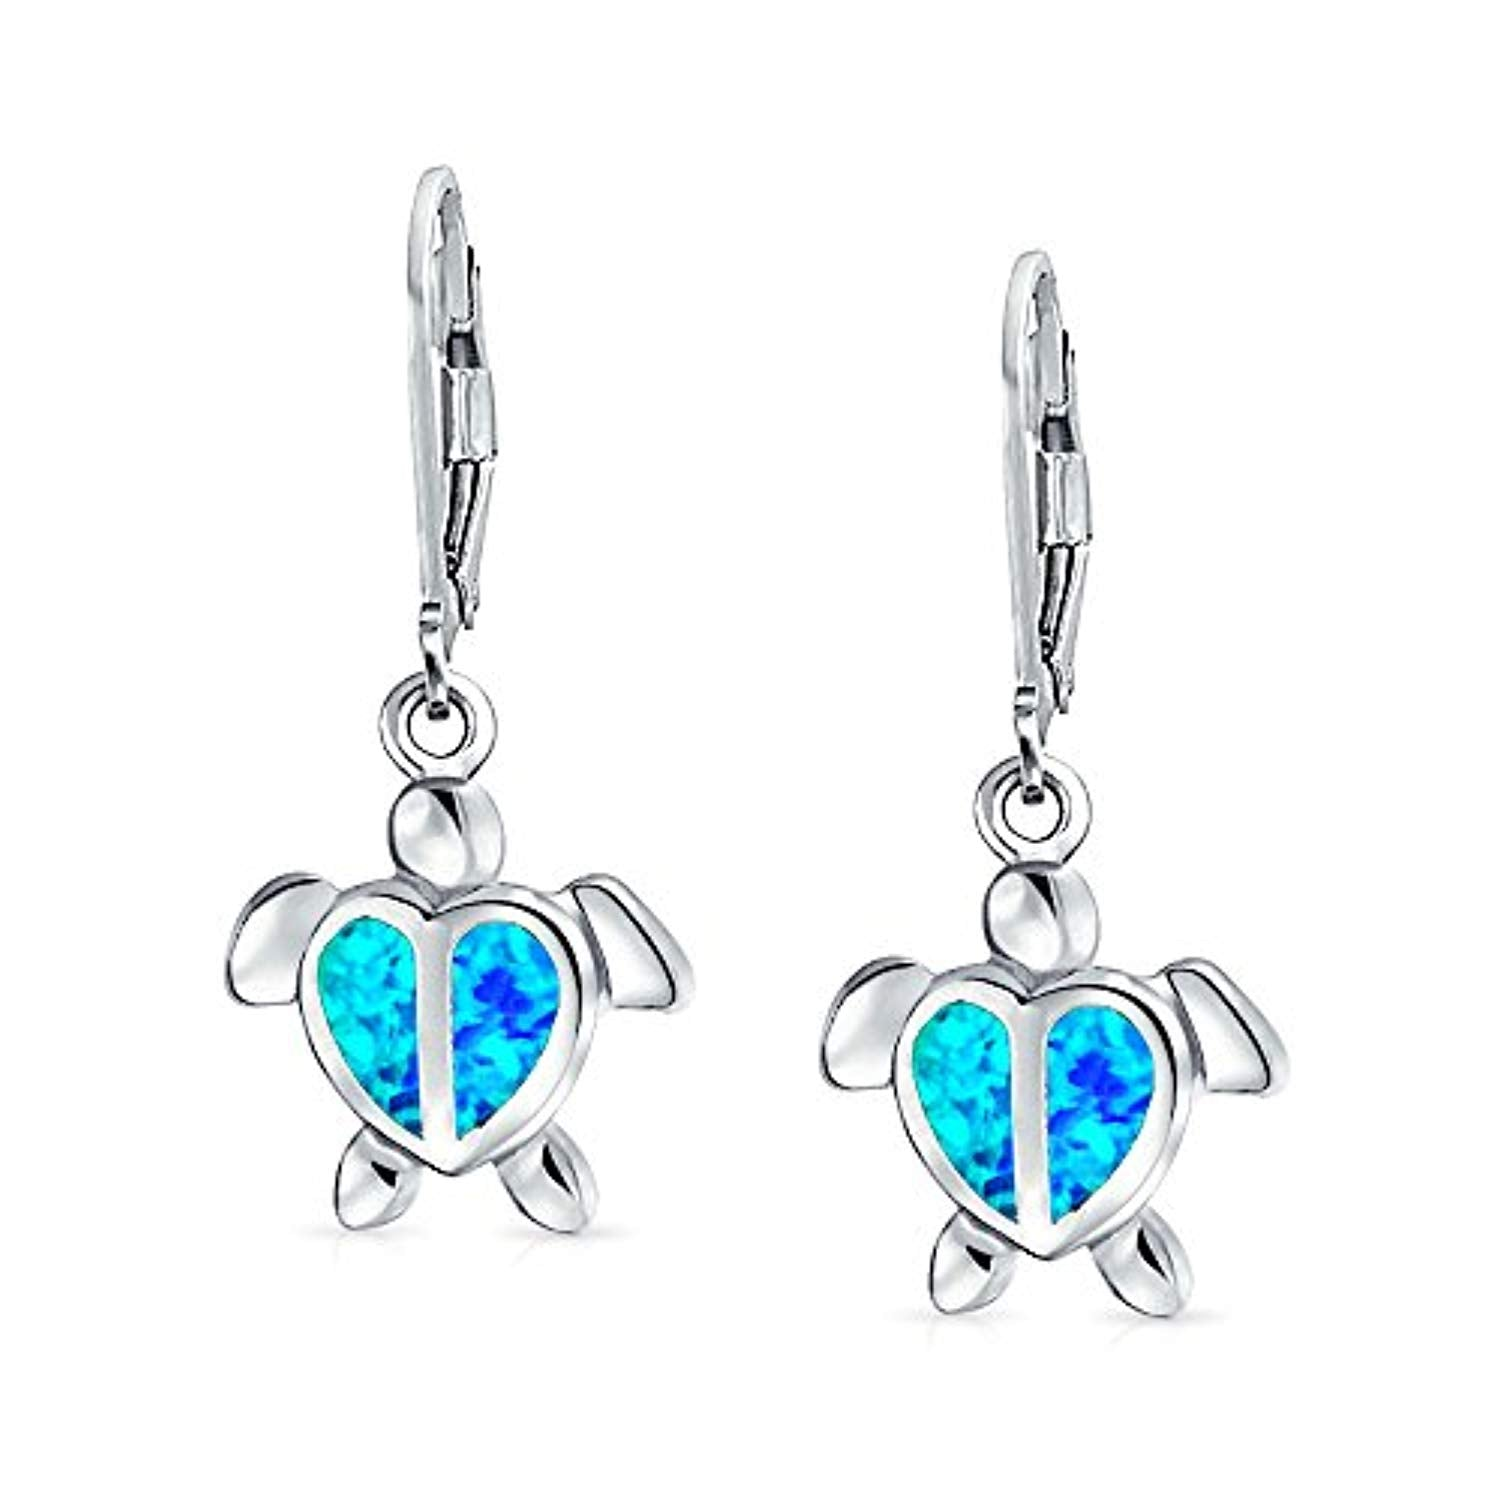 Blue Created Opal Nautical Sea Life Ocean Sea Heart Turtle Drop Leverback Earrings For Women For Teen Sterling Silver